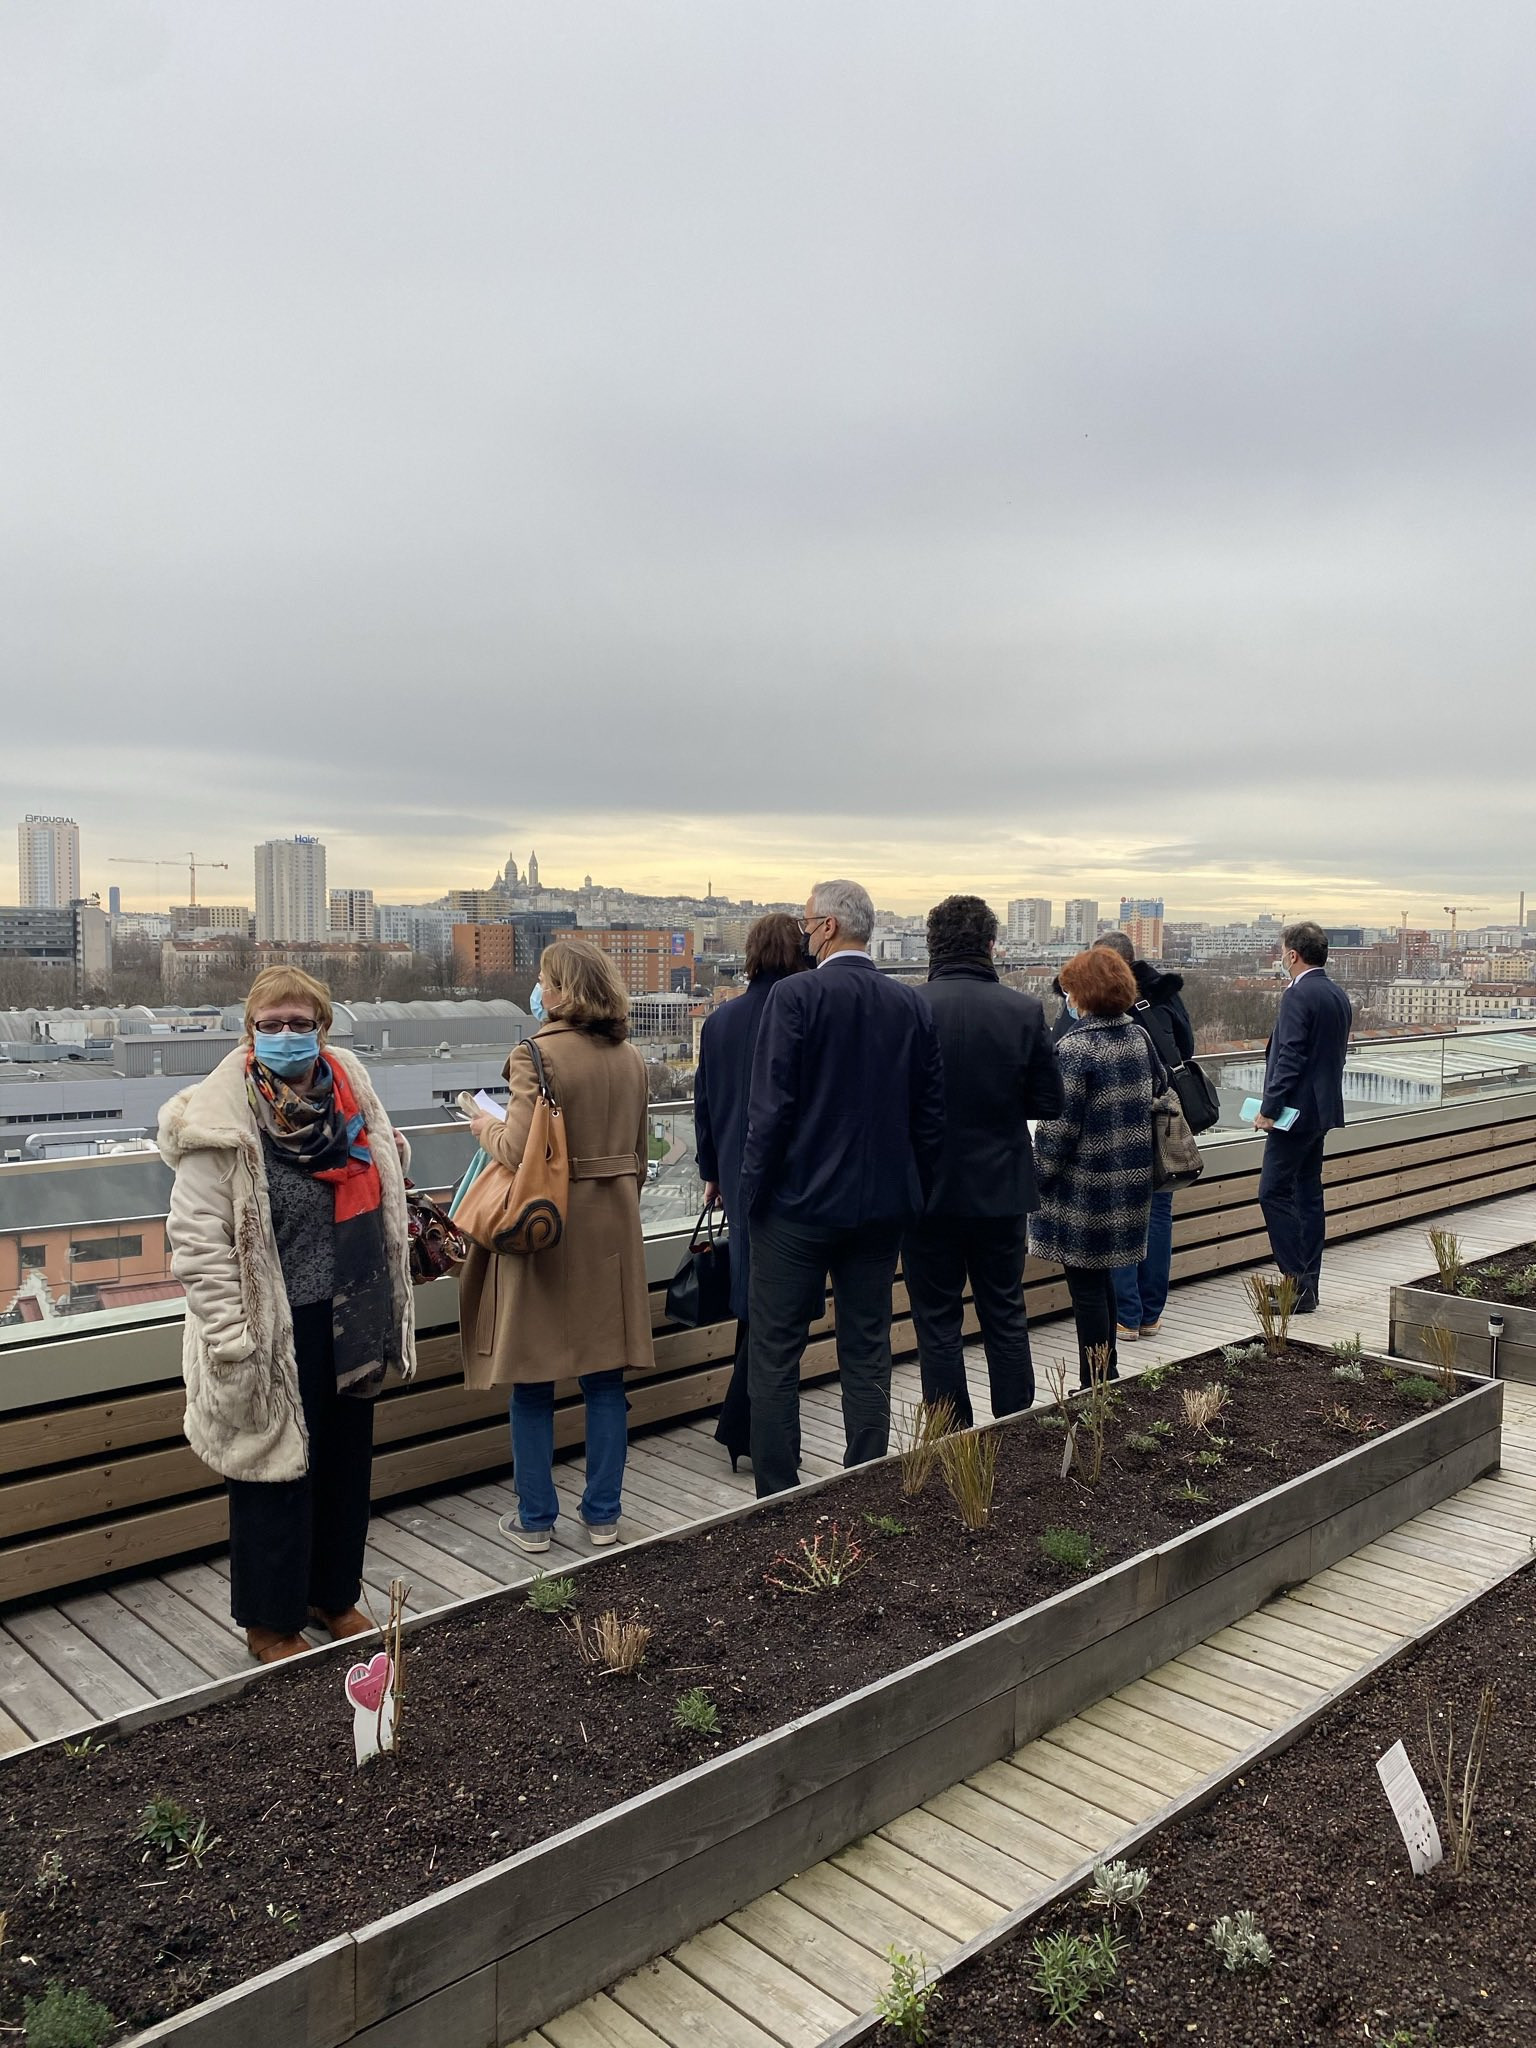 The new Paris 2024 Organising Committee headquarters has a herb garden on the roof ©Twitter